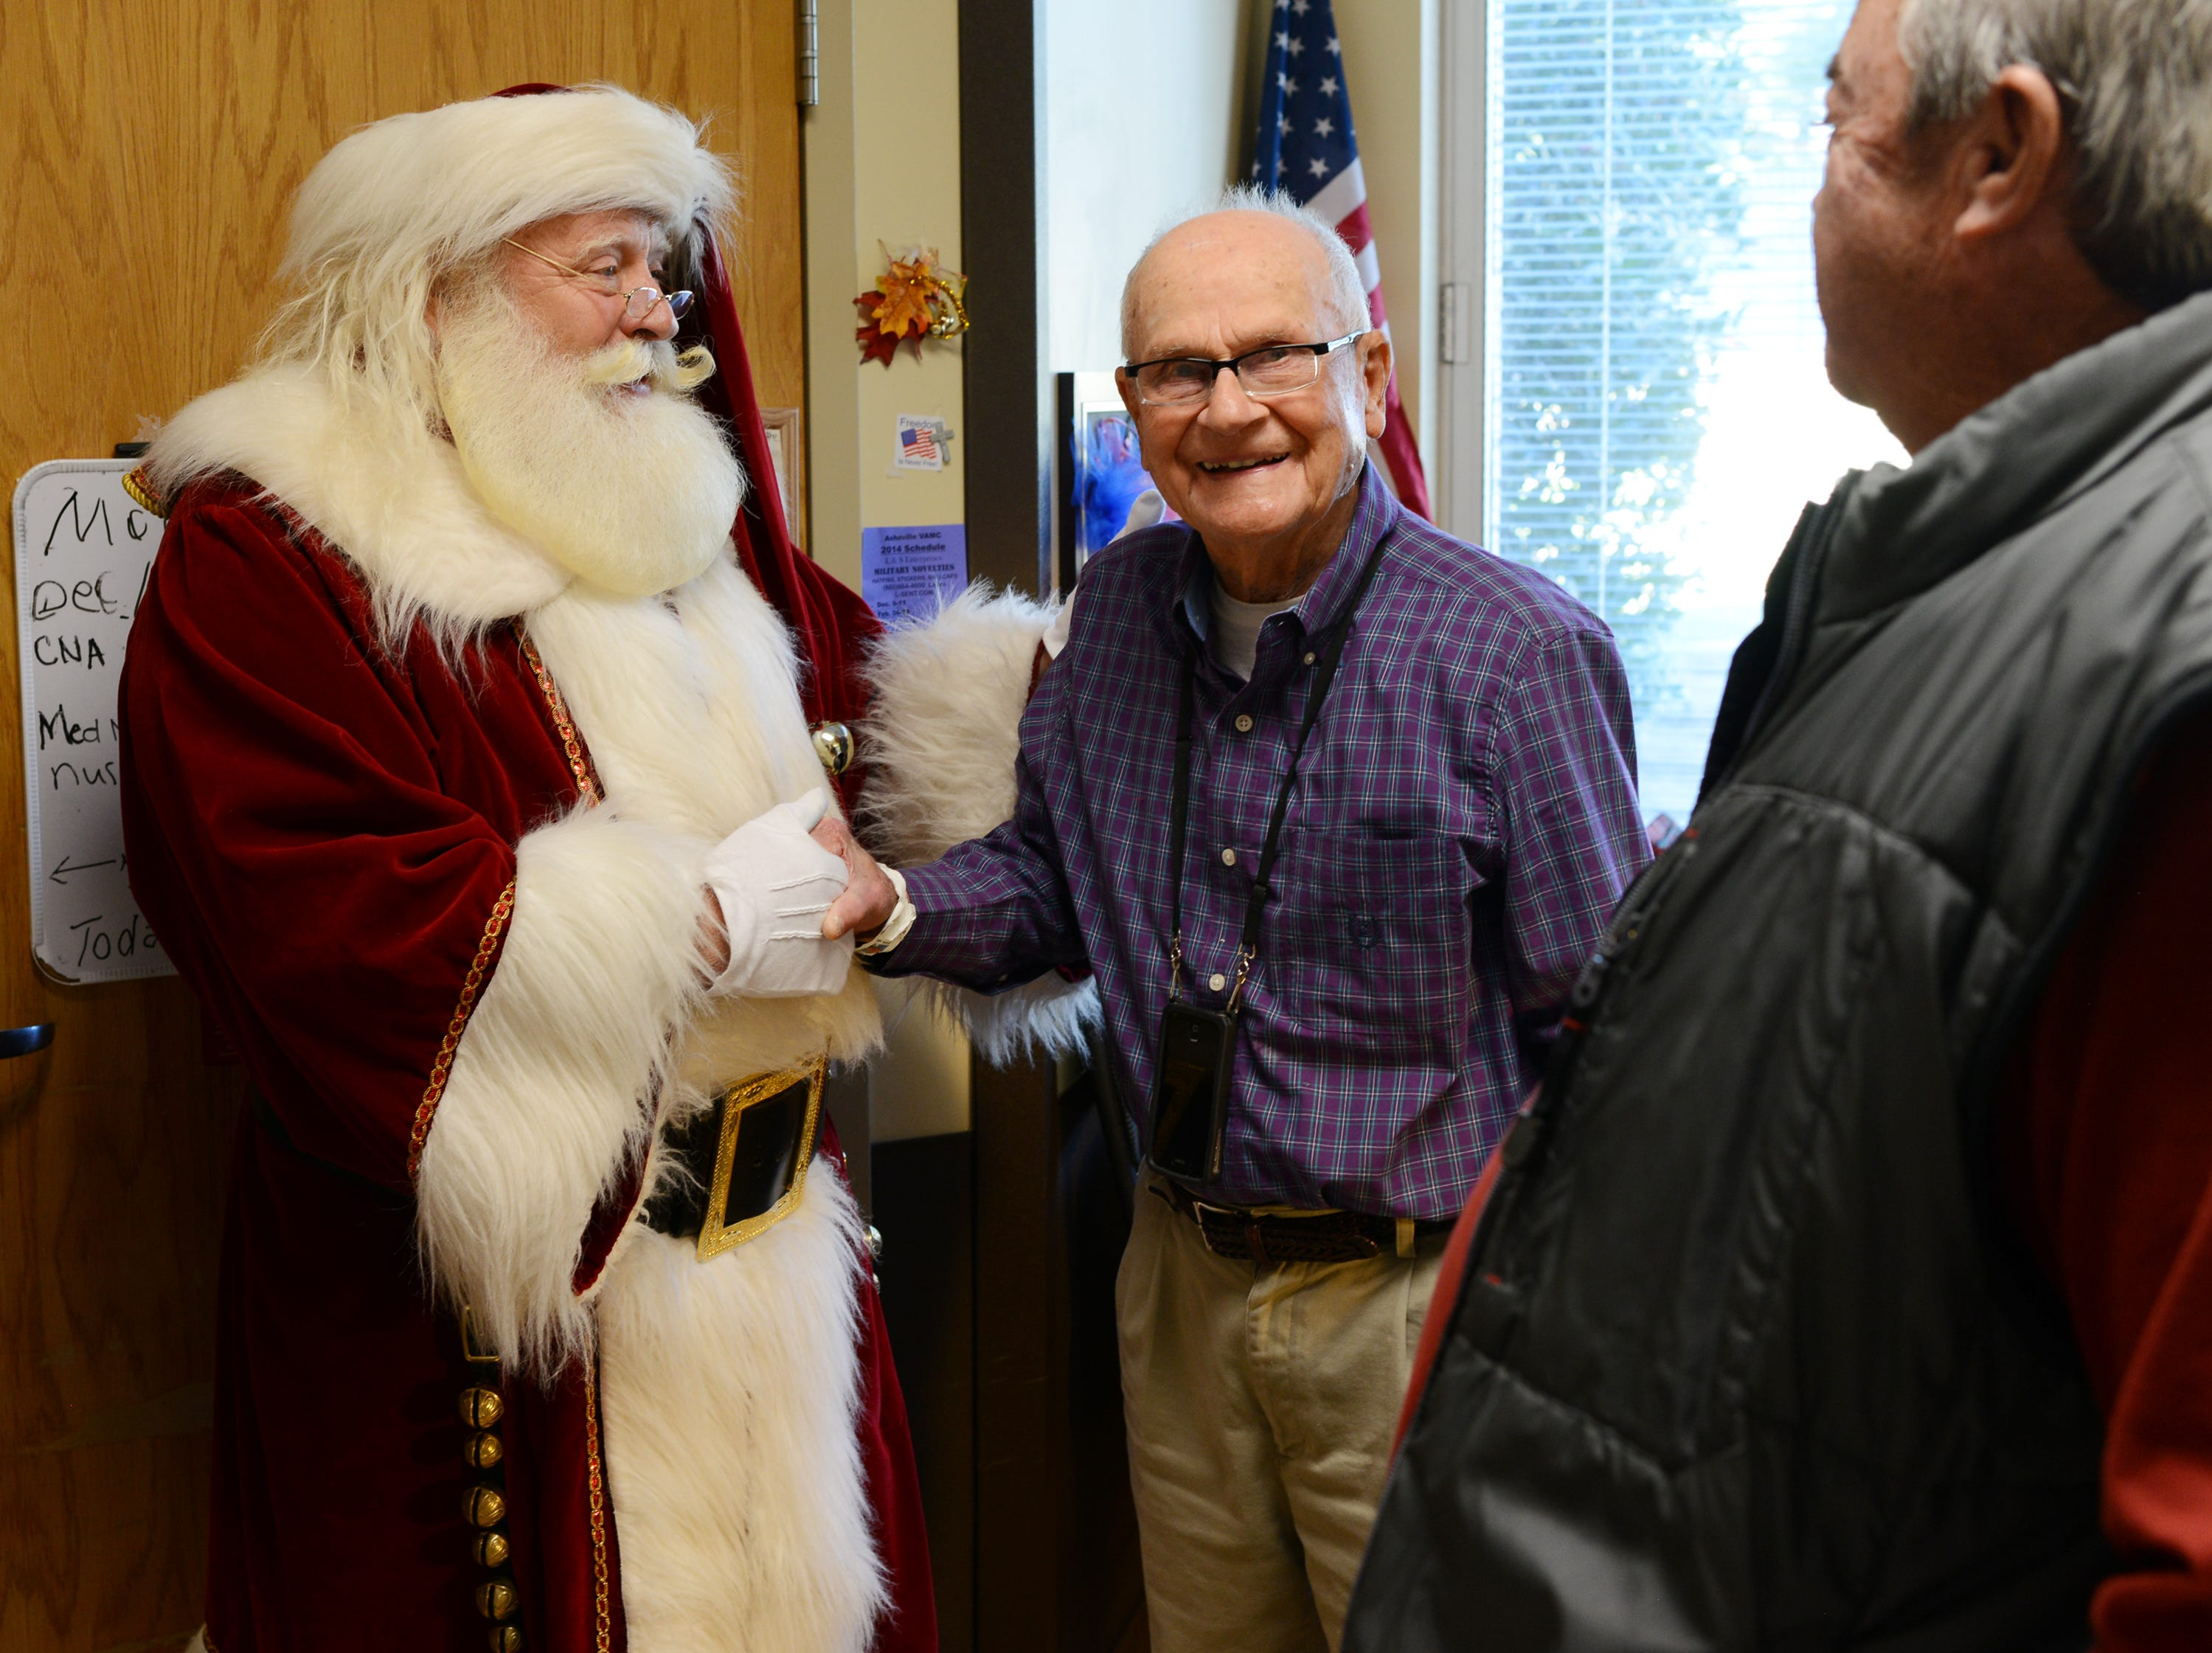 Dennis Reed, an army veteran who dresses as Santa Claus, shakes hands with Wayne Carringer, an army veteran who is staying at the VA Medical Center's community living center in December 2013. Reed and others with the Volunteers of Veterans Service Organization delivered hundreds of holiday gift bags, teddy bears and treats to veterans staying at the hospital.